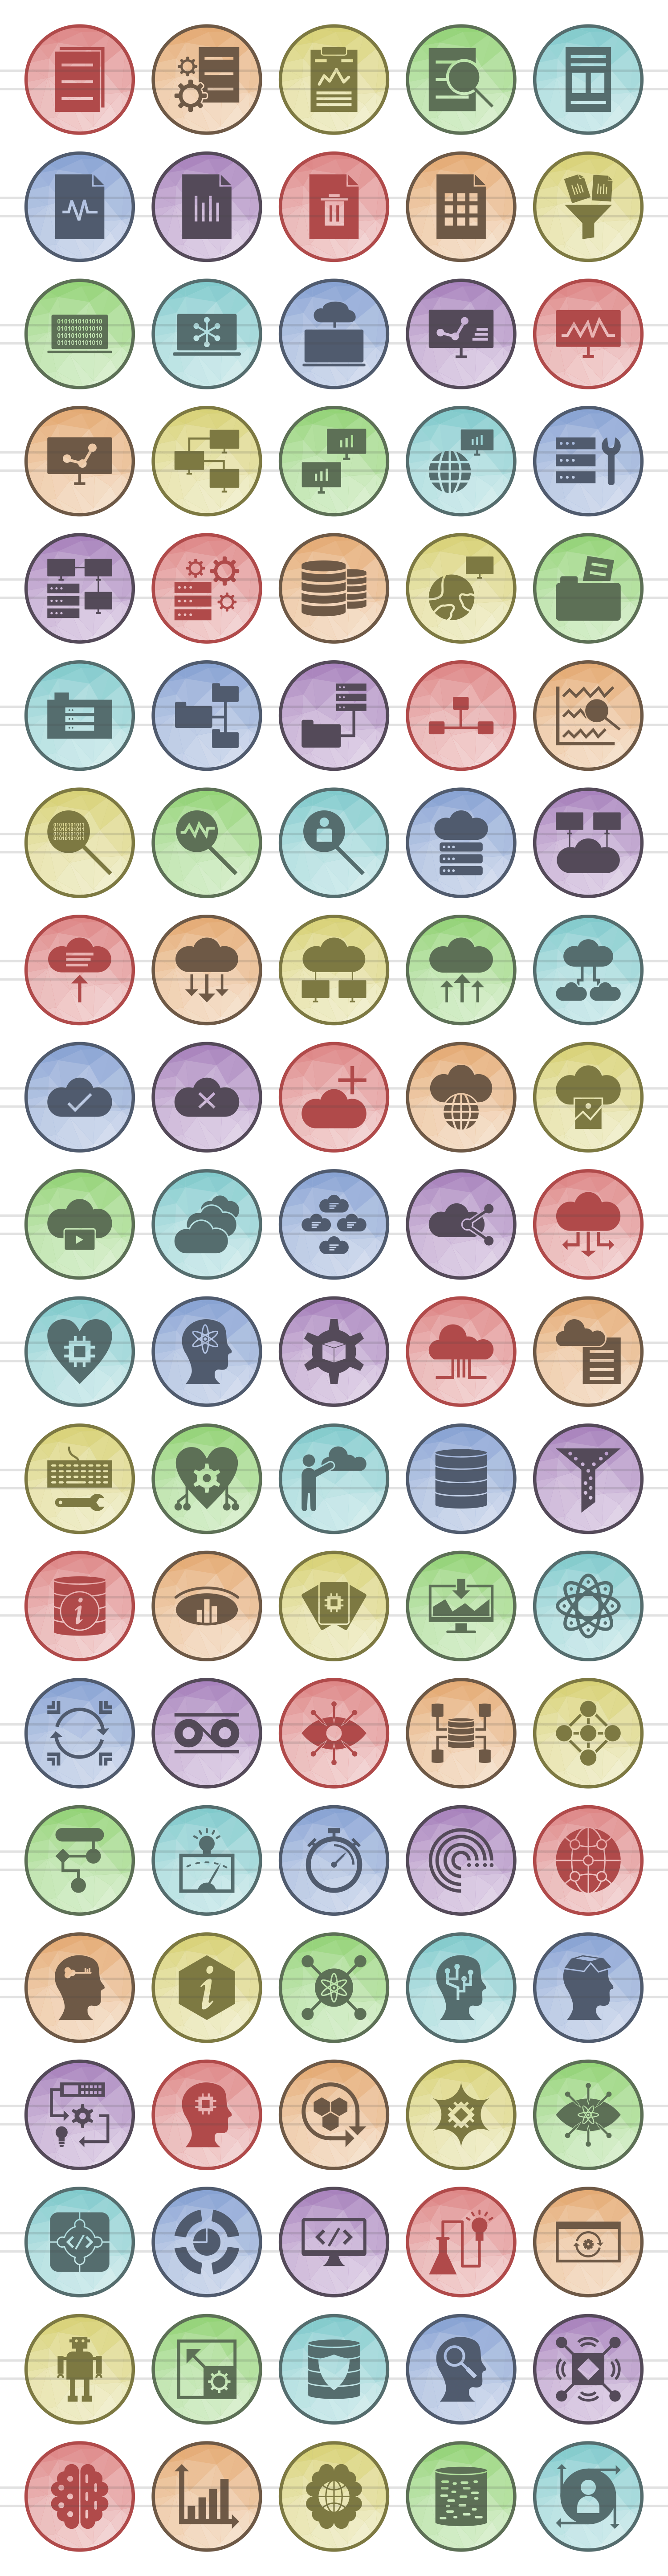 100 Data Filled Low Poly Icons example image 2